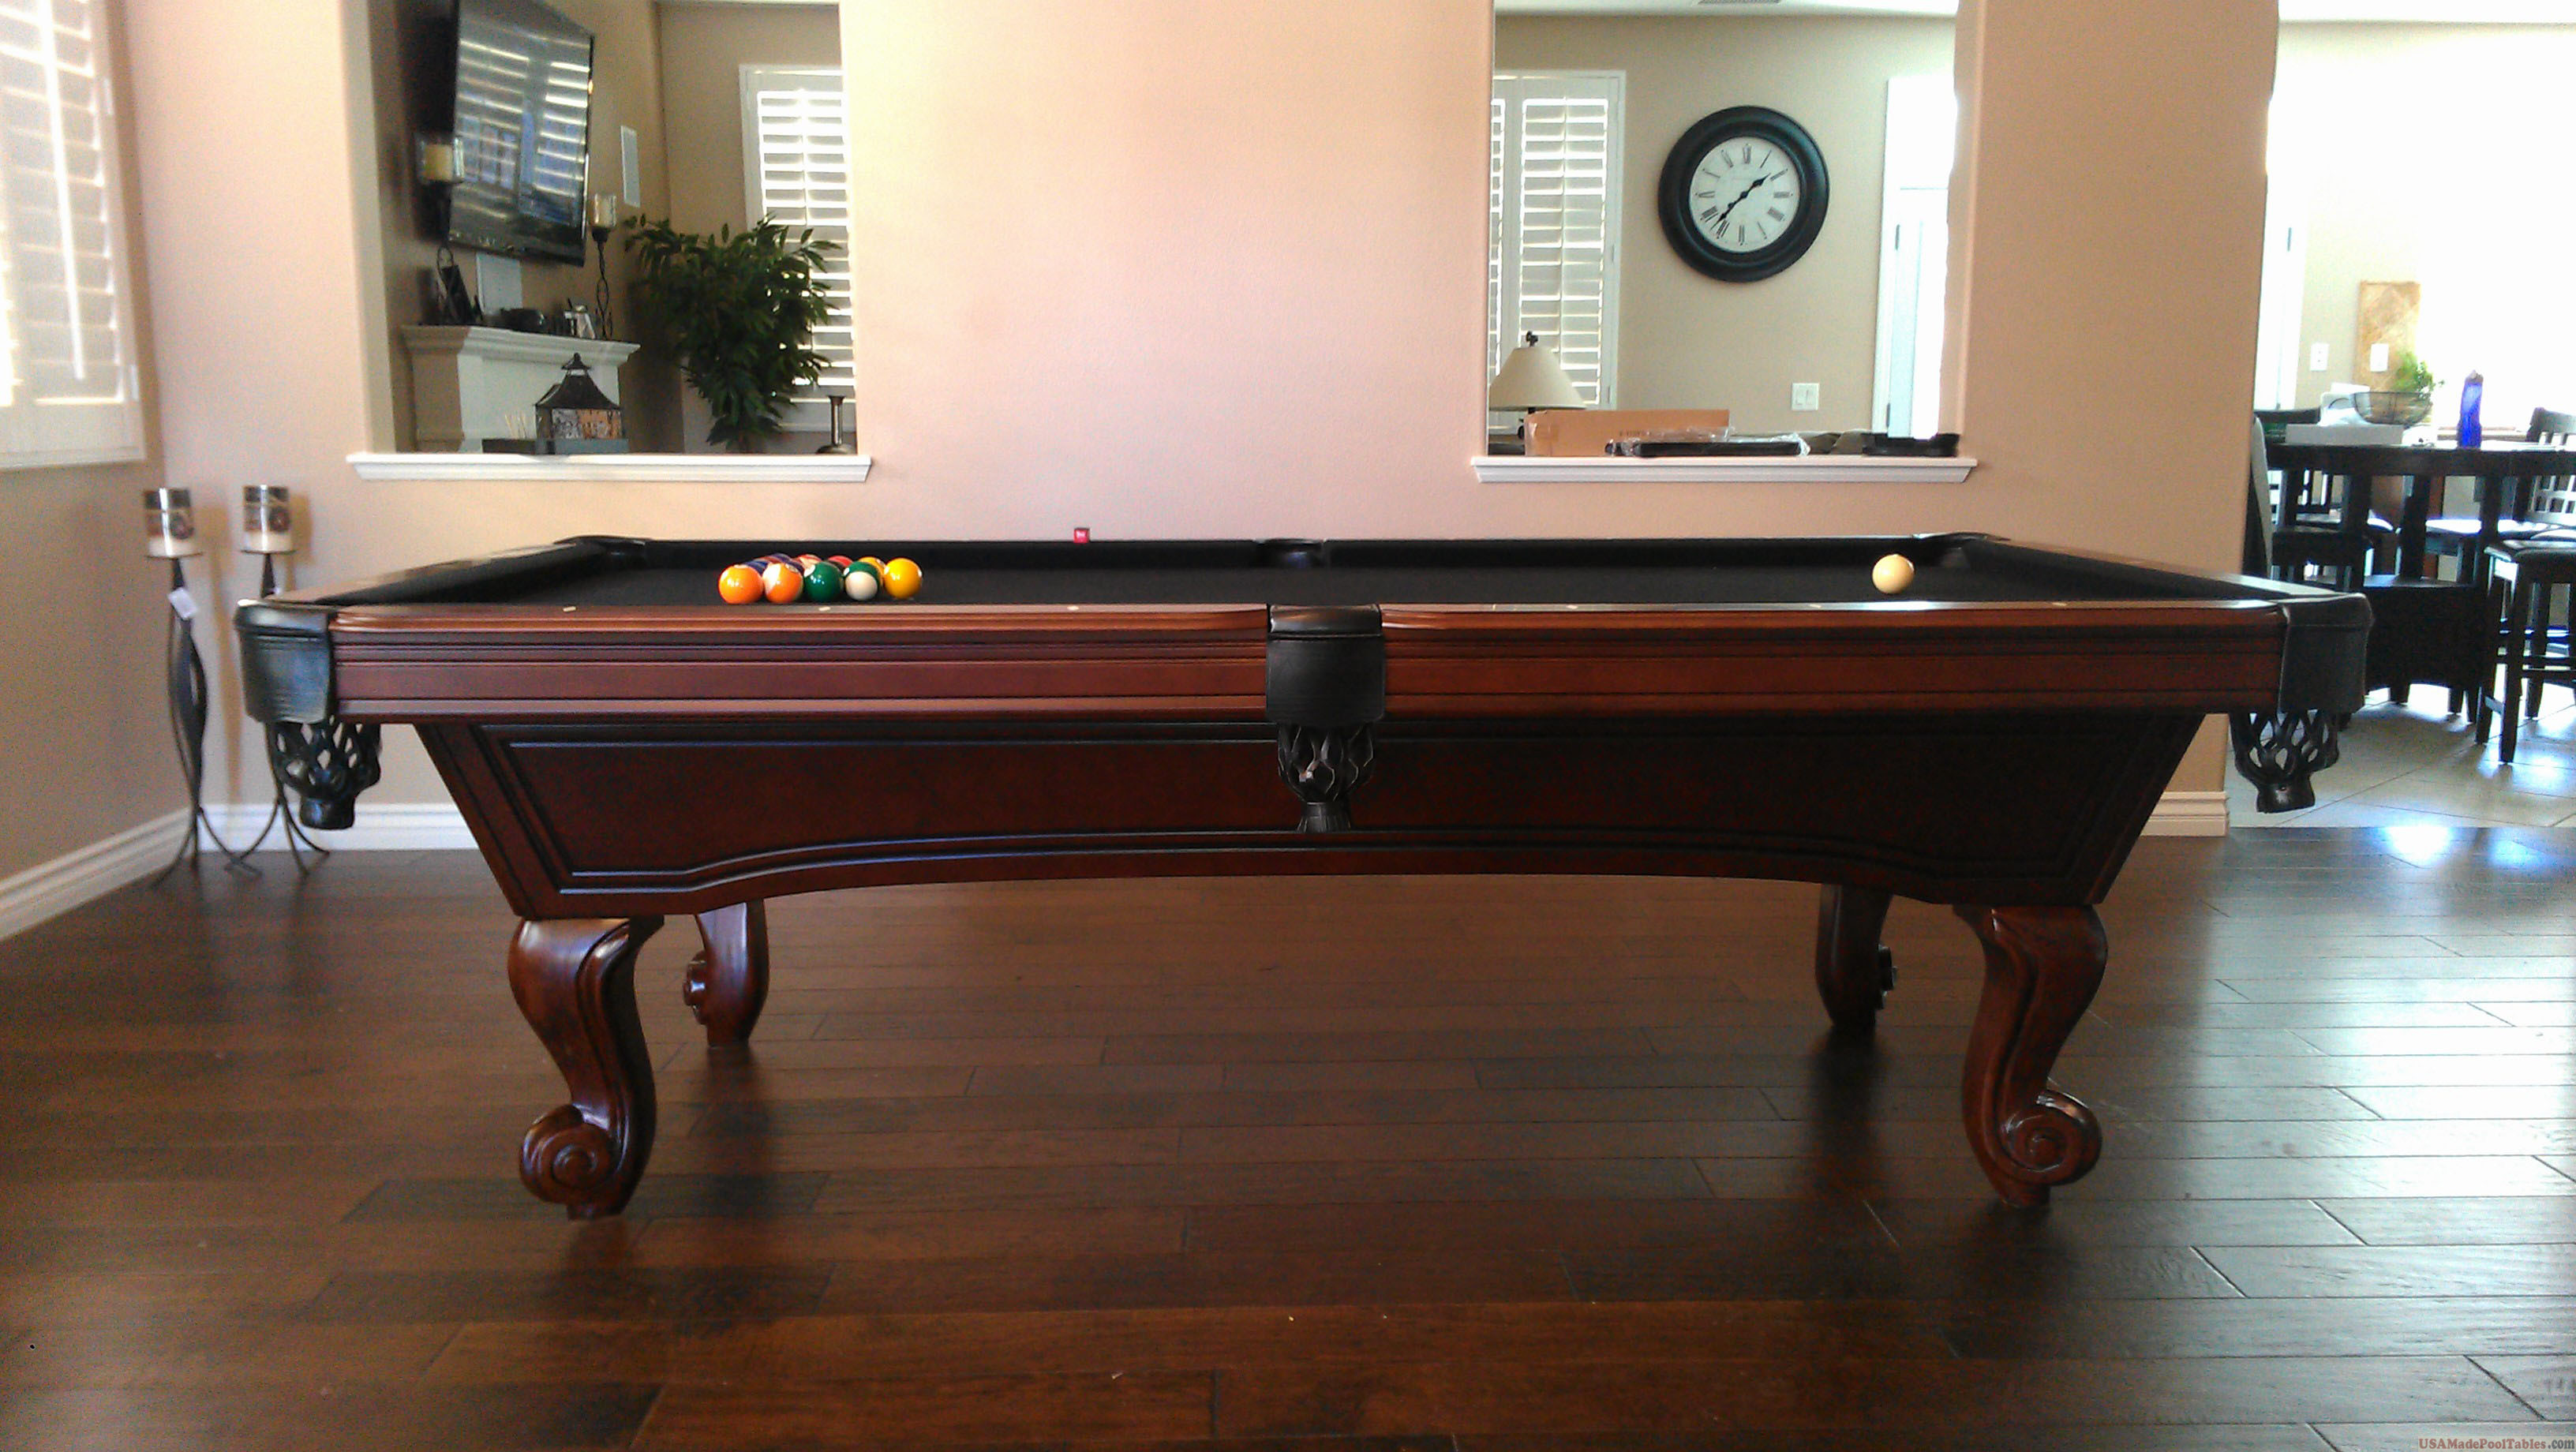 HOLLYWOOD POOL TABLES POOL TABLES LOS ANGELES POOL TABLES ORANGE - Pool table movers thousand oaks